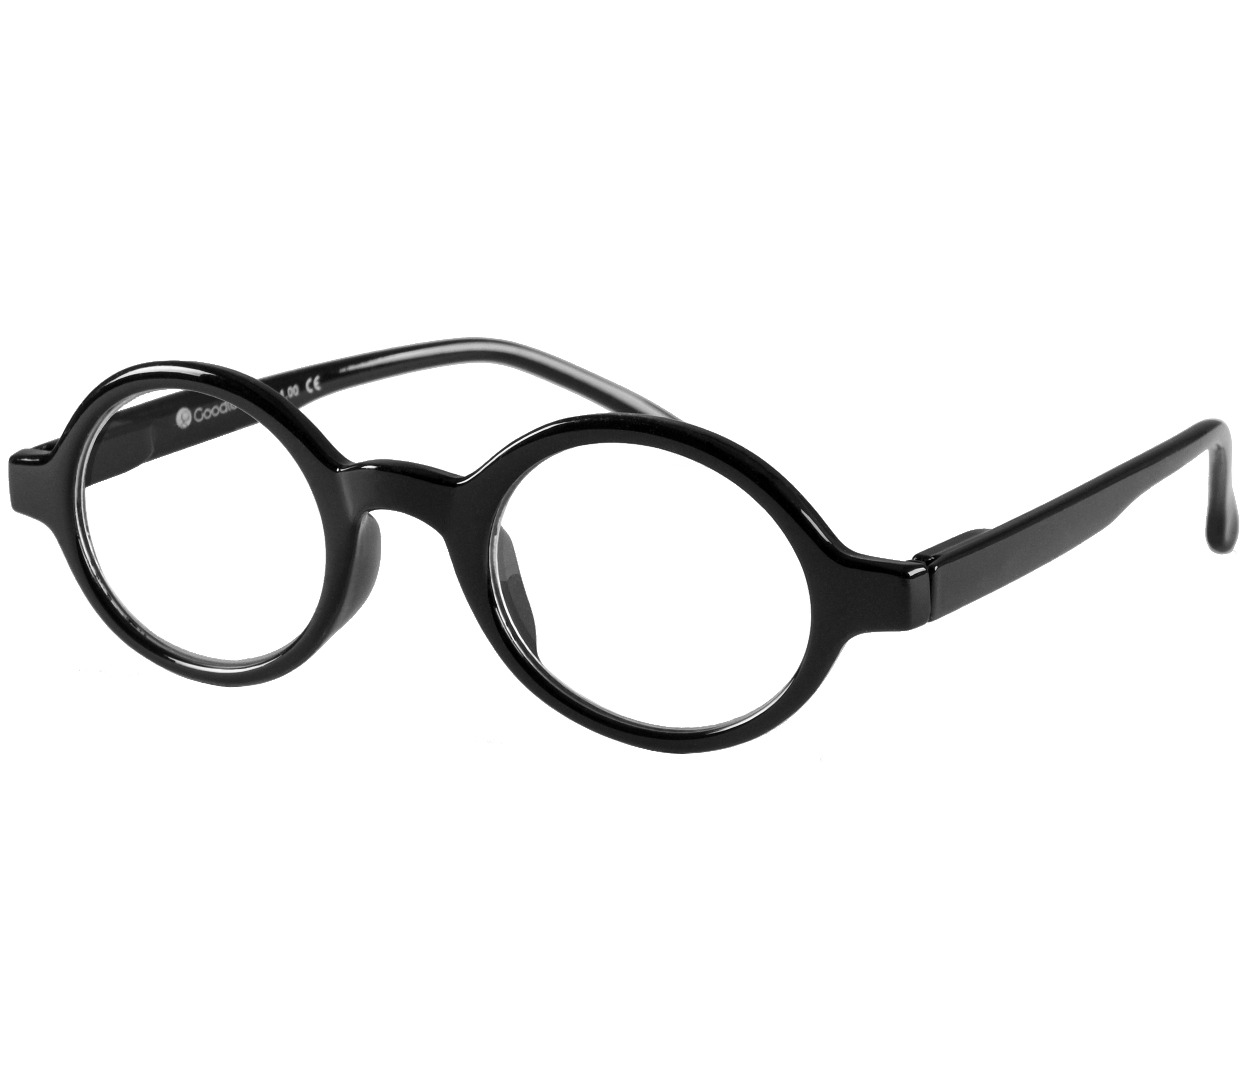 Main Image (Angle) - Kensington (Black) Retro Reading Glasses